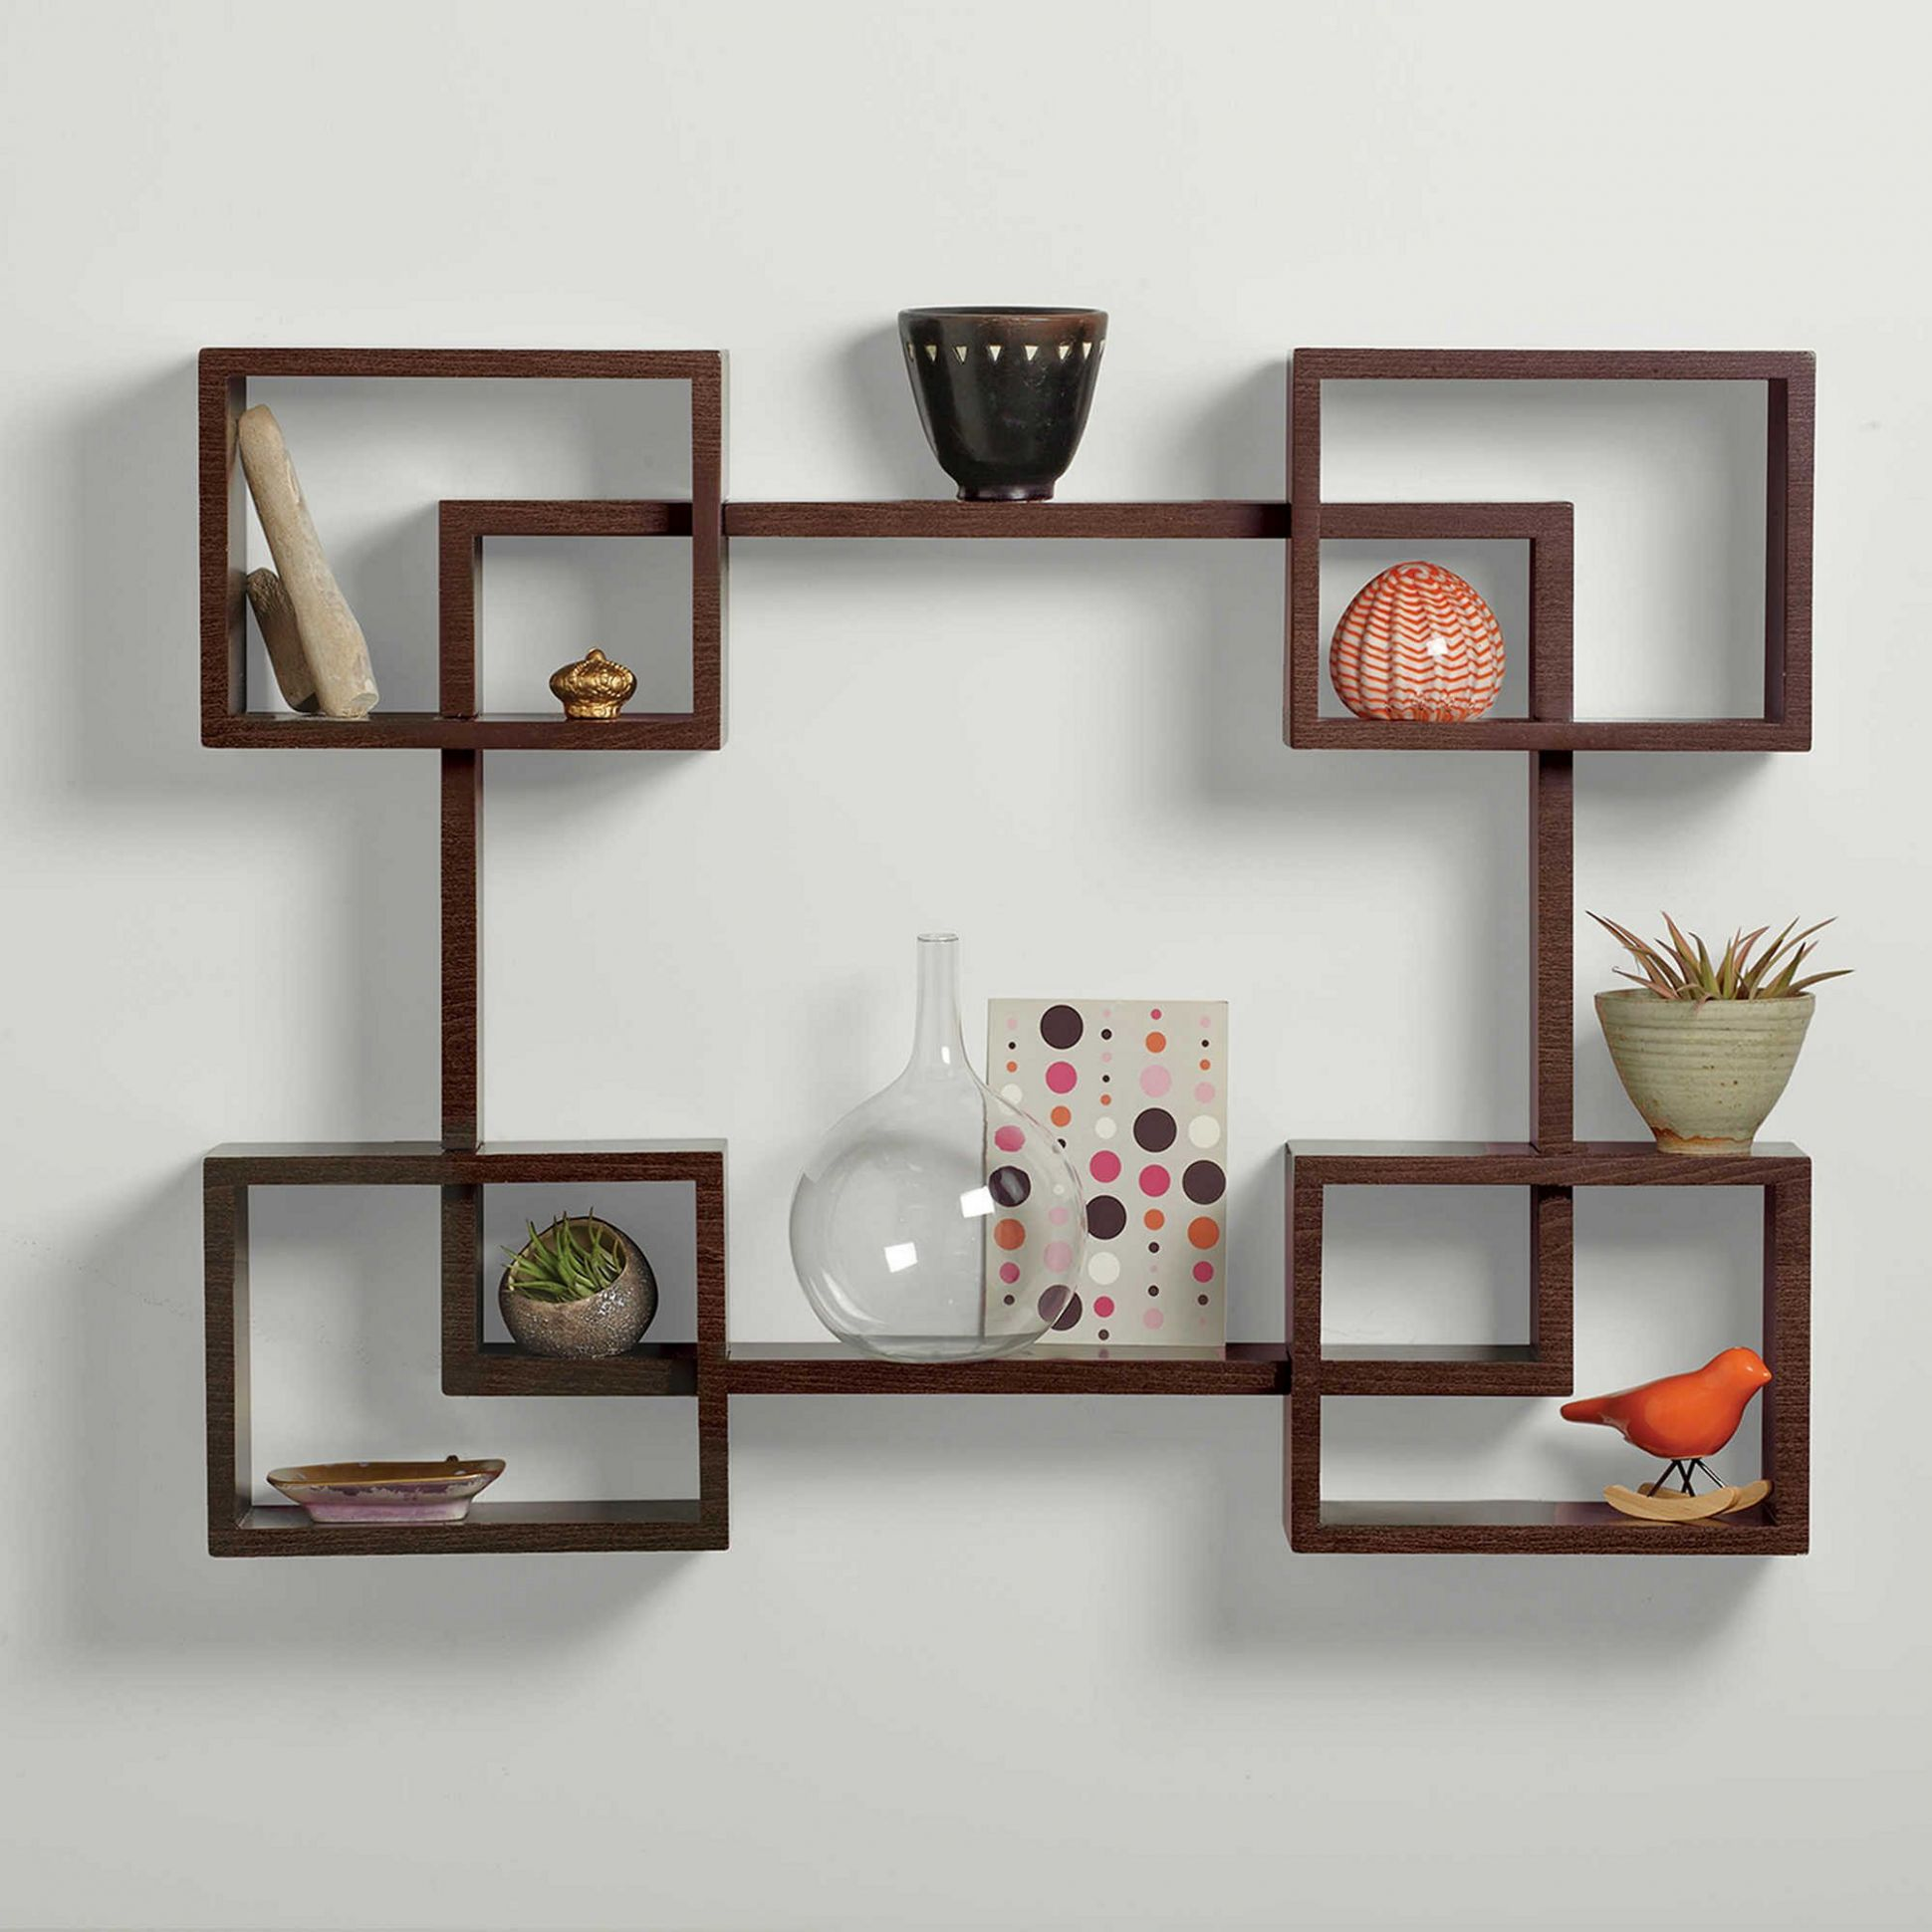 9 Creative Wall Shelves Design Ideas For Lovely Home Decoration ..